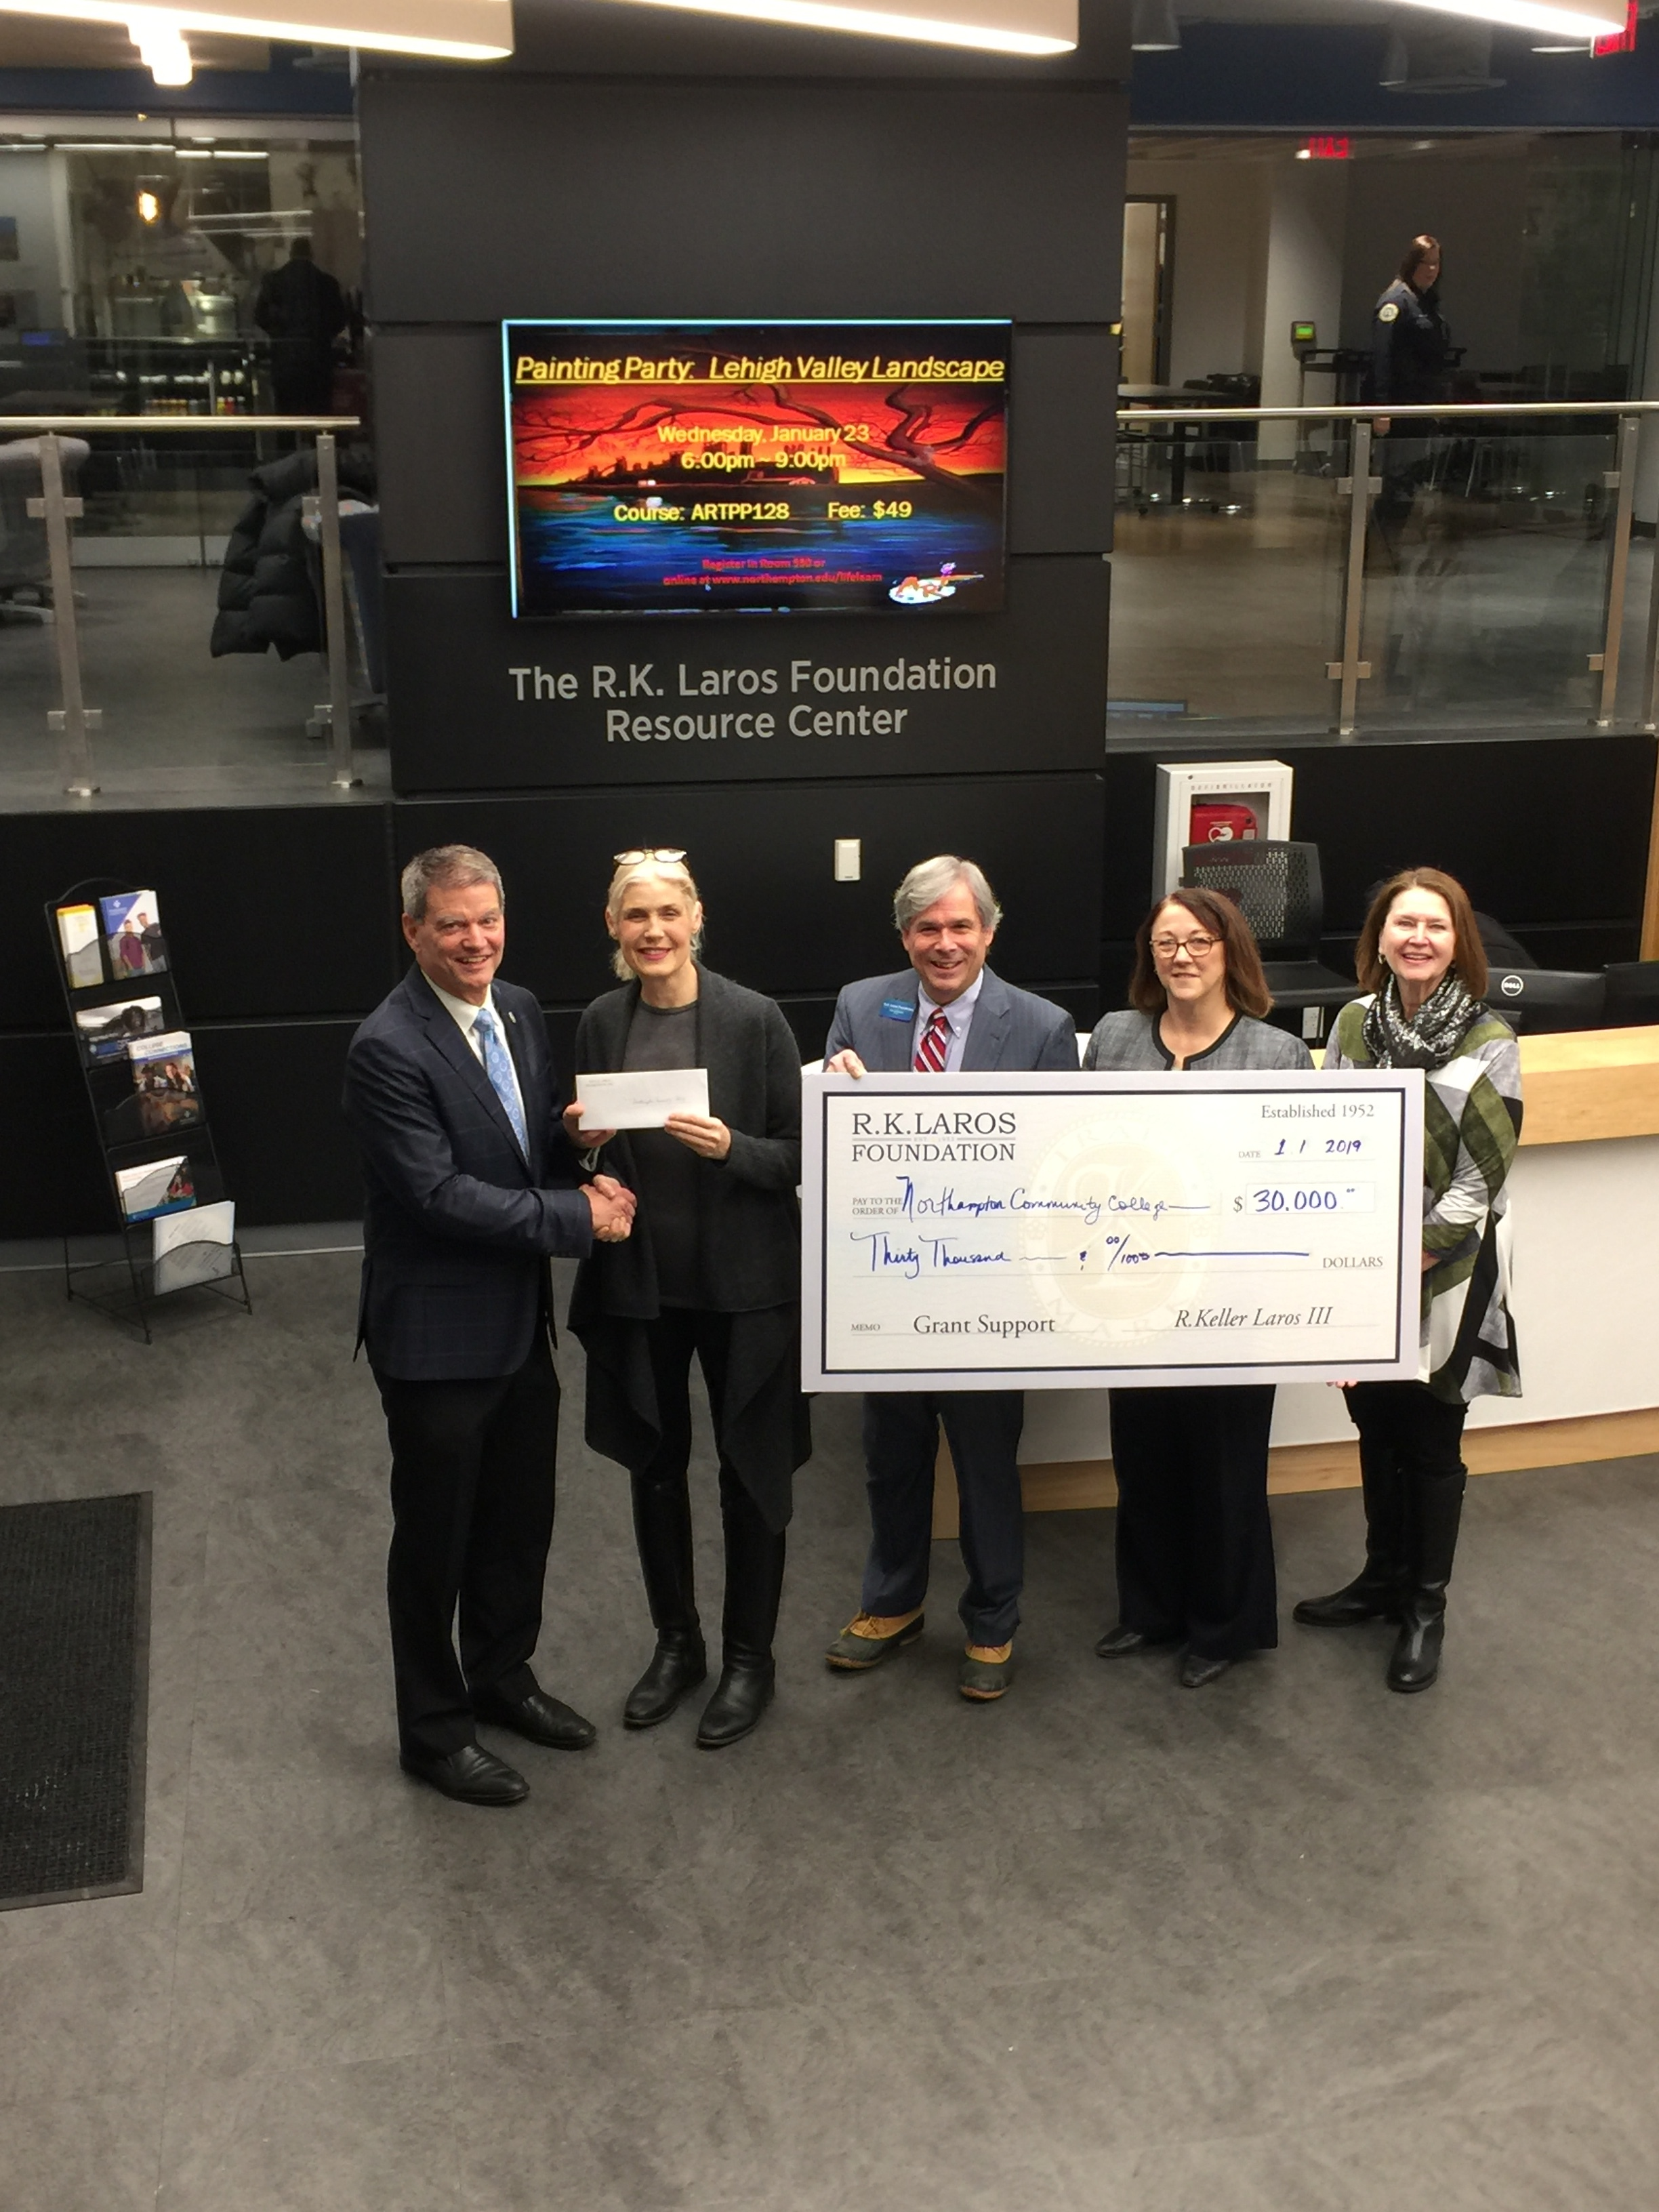 Foundation Vice Chair Laura Bennett Shelton and Trustees Diane Donaher and Robert Bilheimer on 1.18.19 present the grant to Northampton Community College President Mark Erickson and Vice President Workforce Development Lauren Loeffler to support the establishment of a Resource Center at the Fowler Campus..